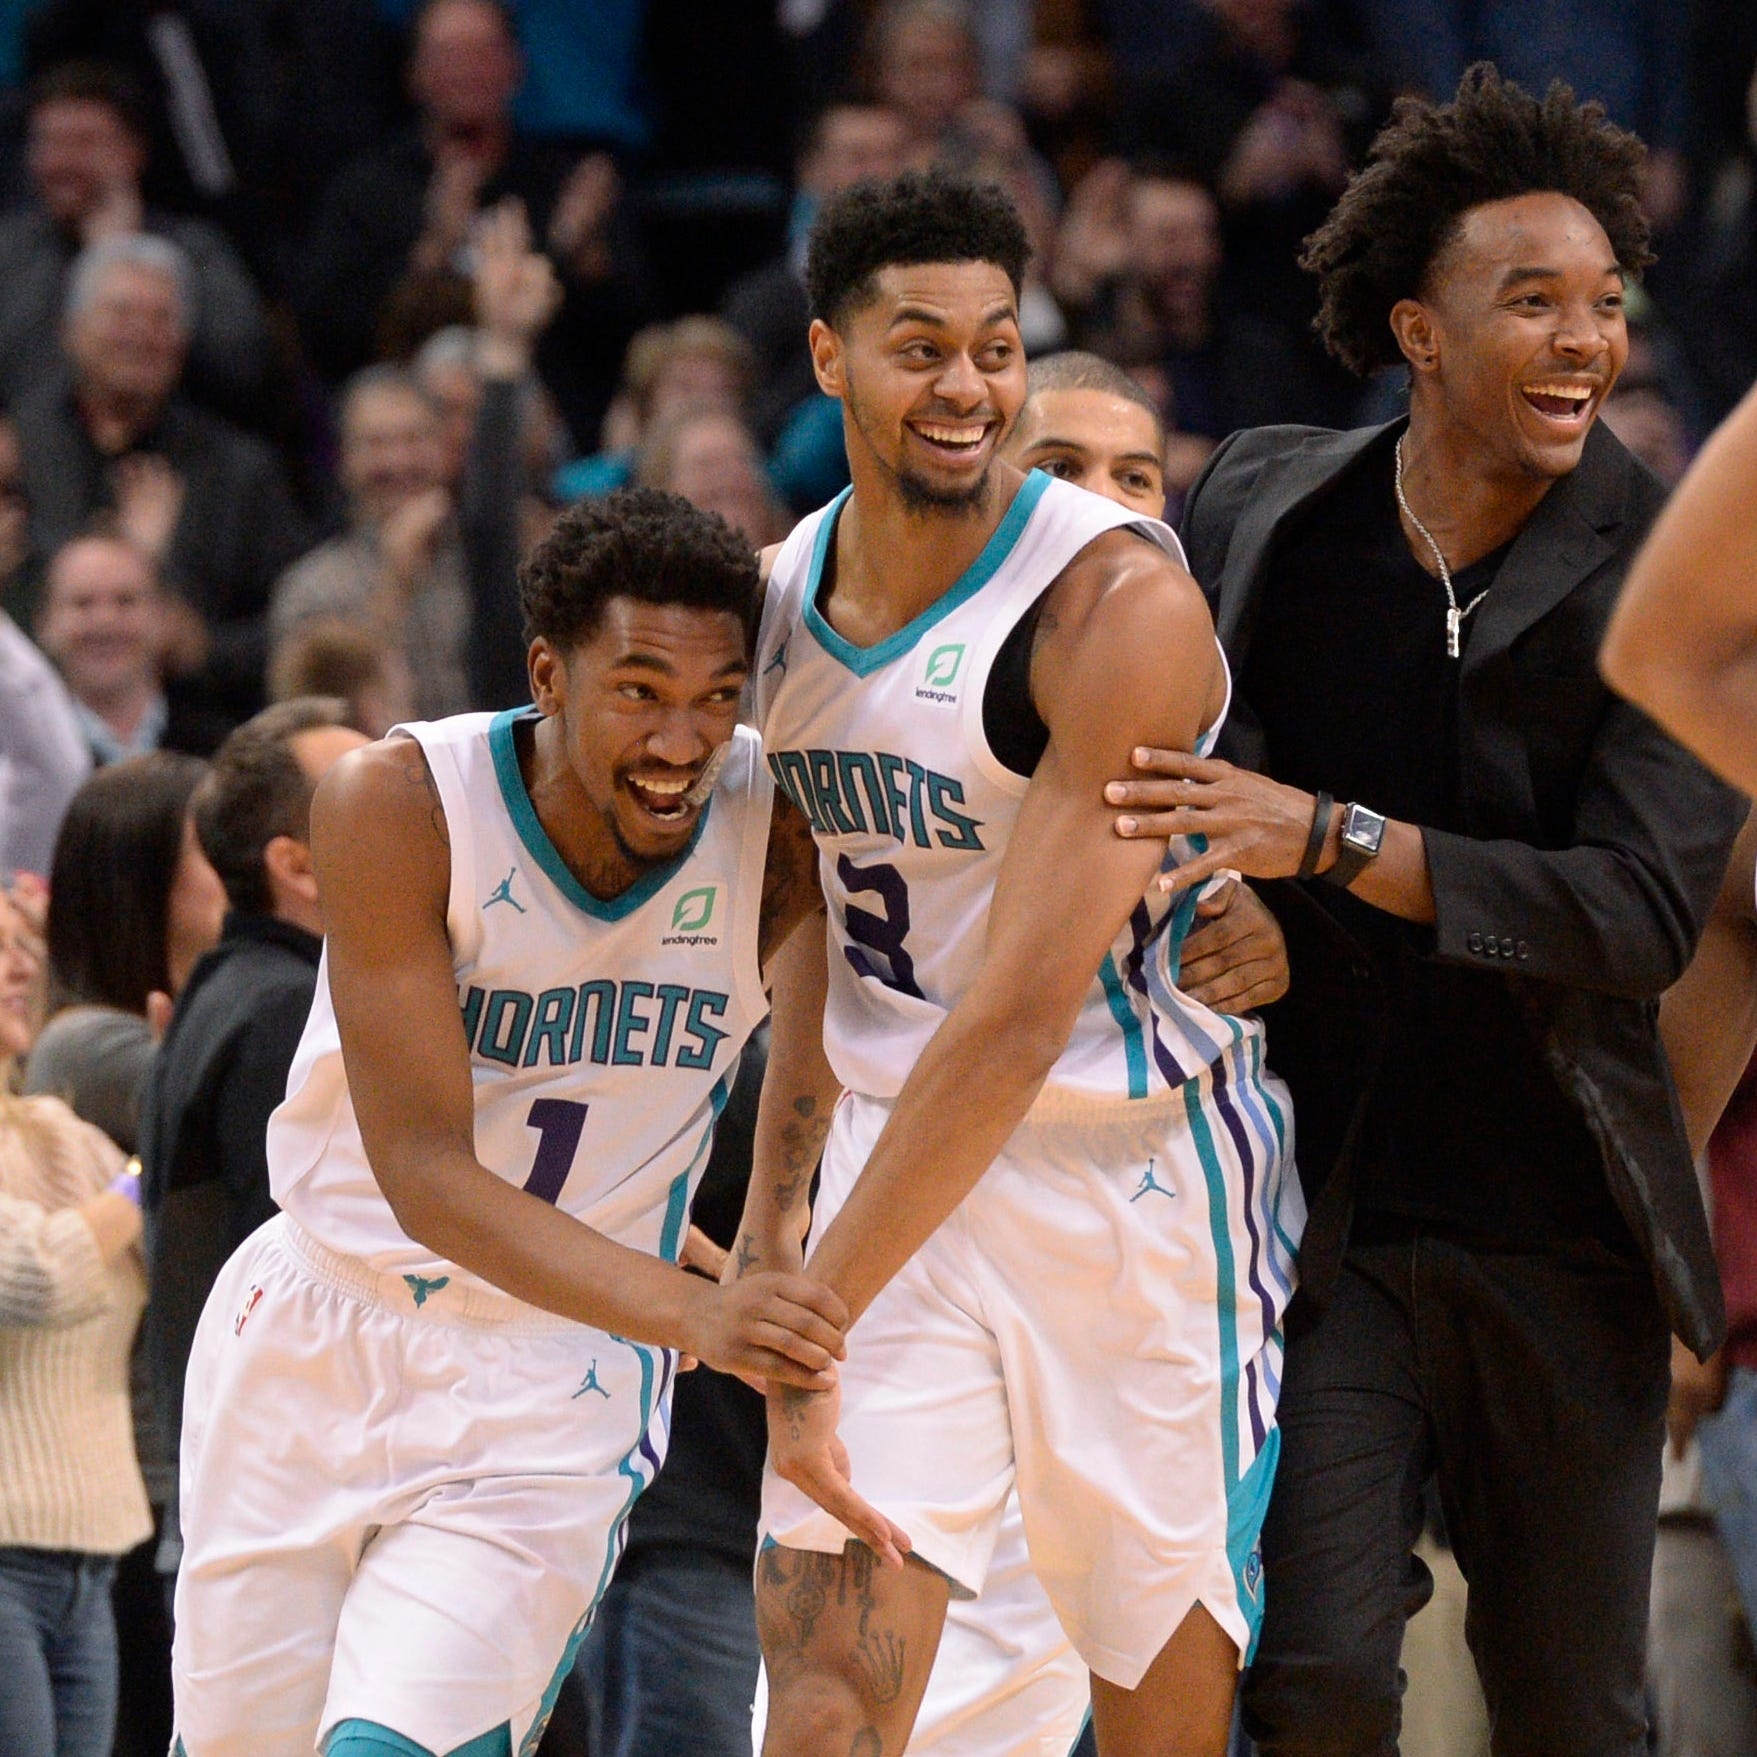 Detroit Pistons lament blown lead, but should Hornets winner have counted?